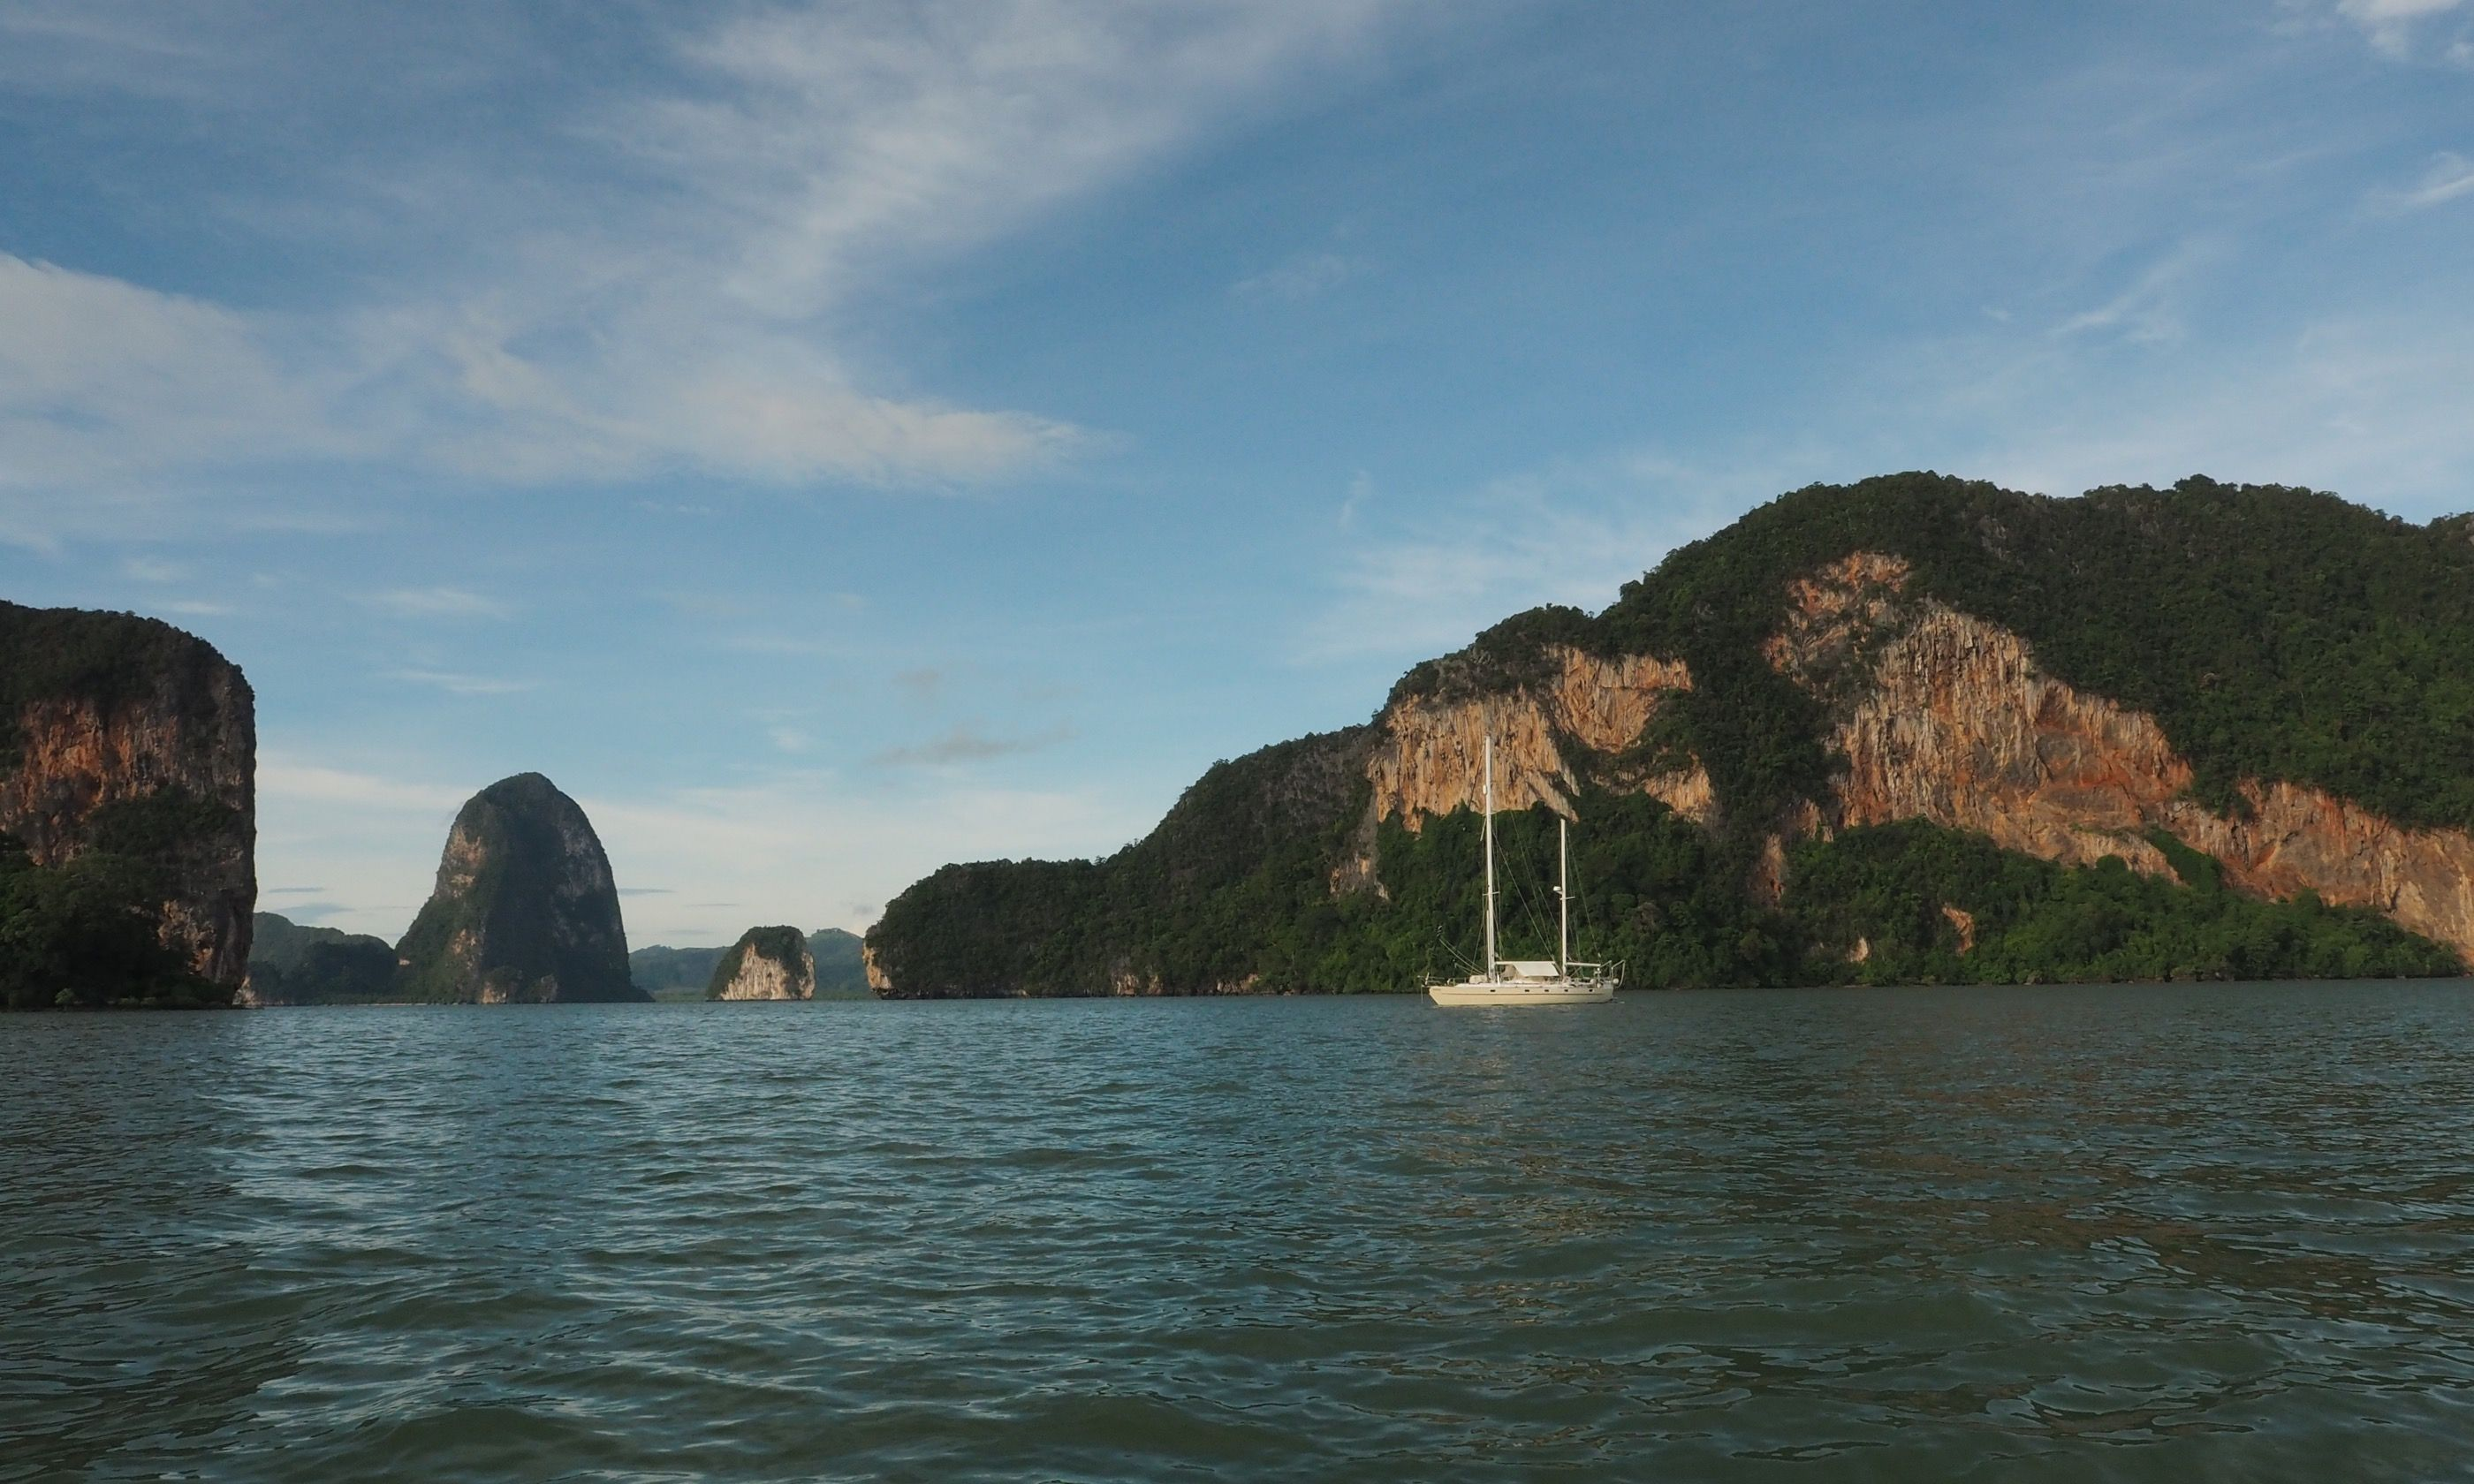 SY Esper, moored near James Bond Island (Jamie Furlong)